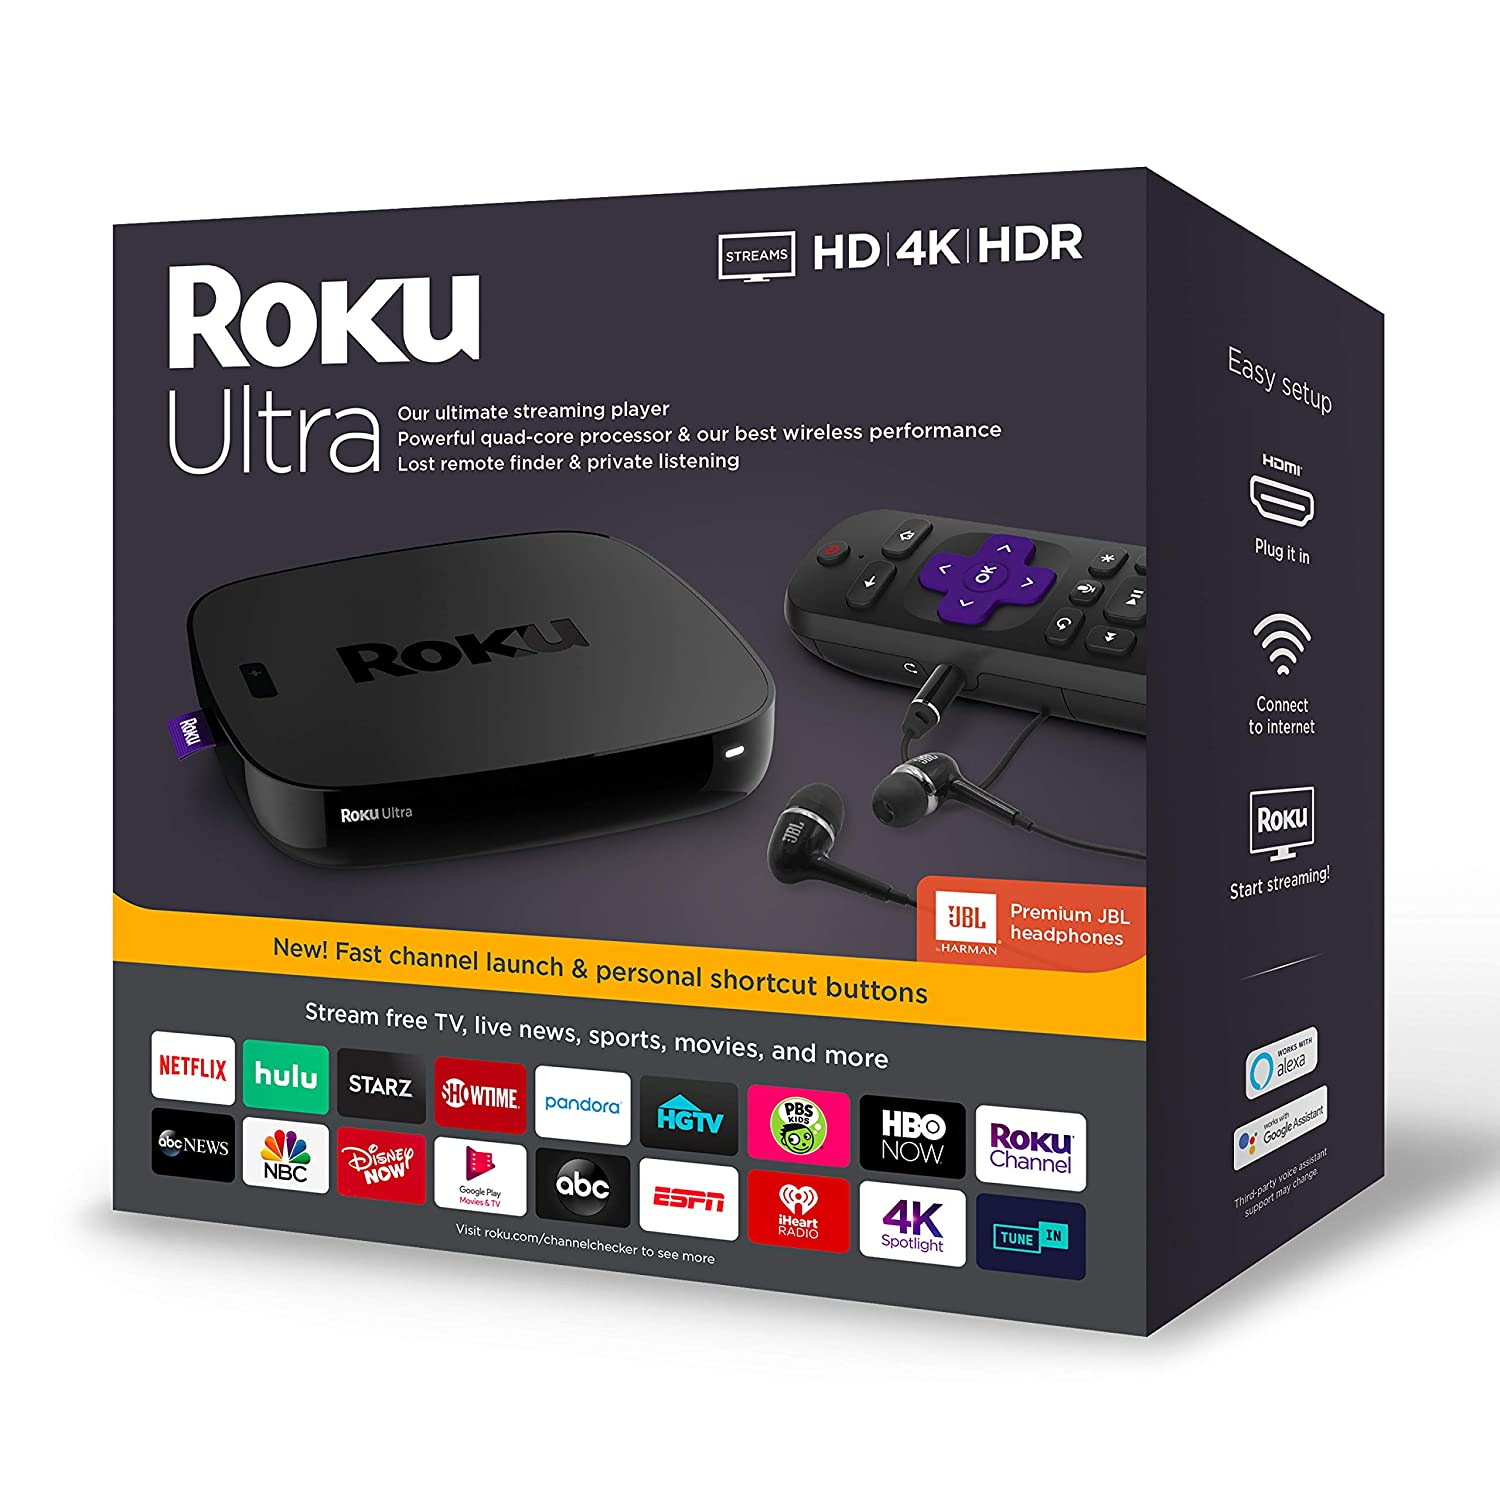 Amazon.com: Roku Ultra Streaming Media Player 4K/HD/HDR 2019 ...